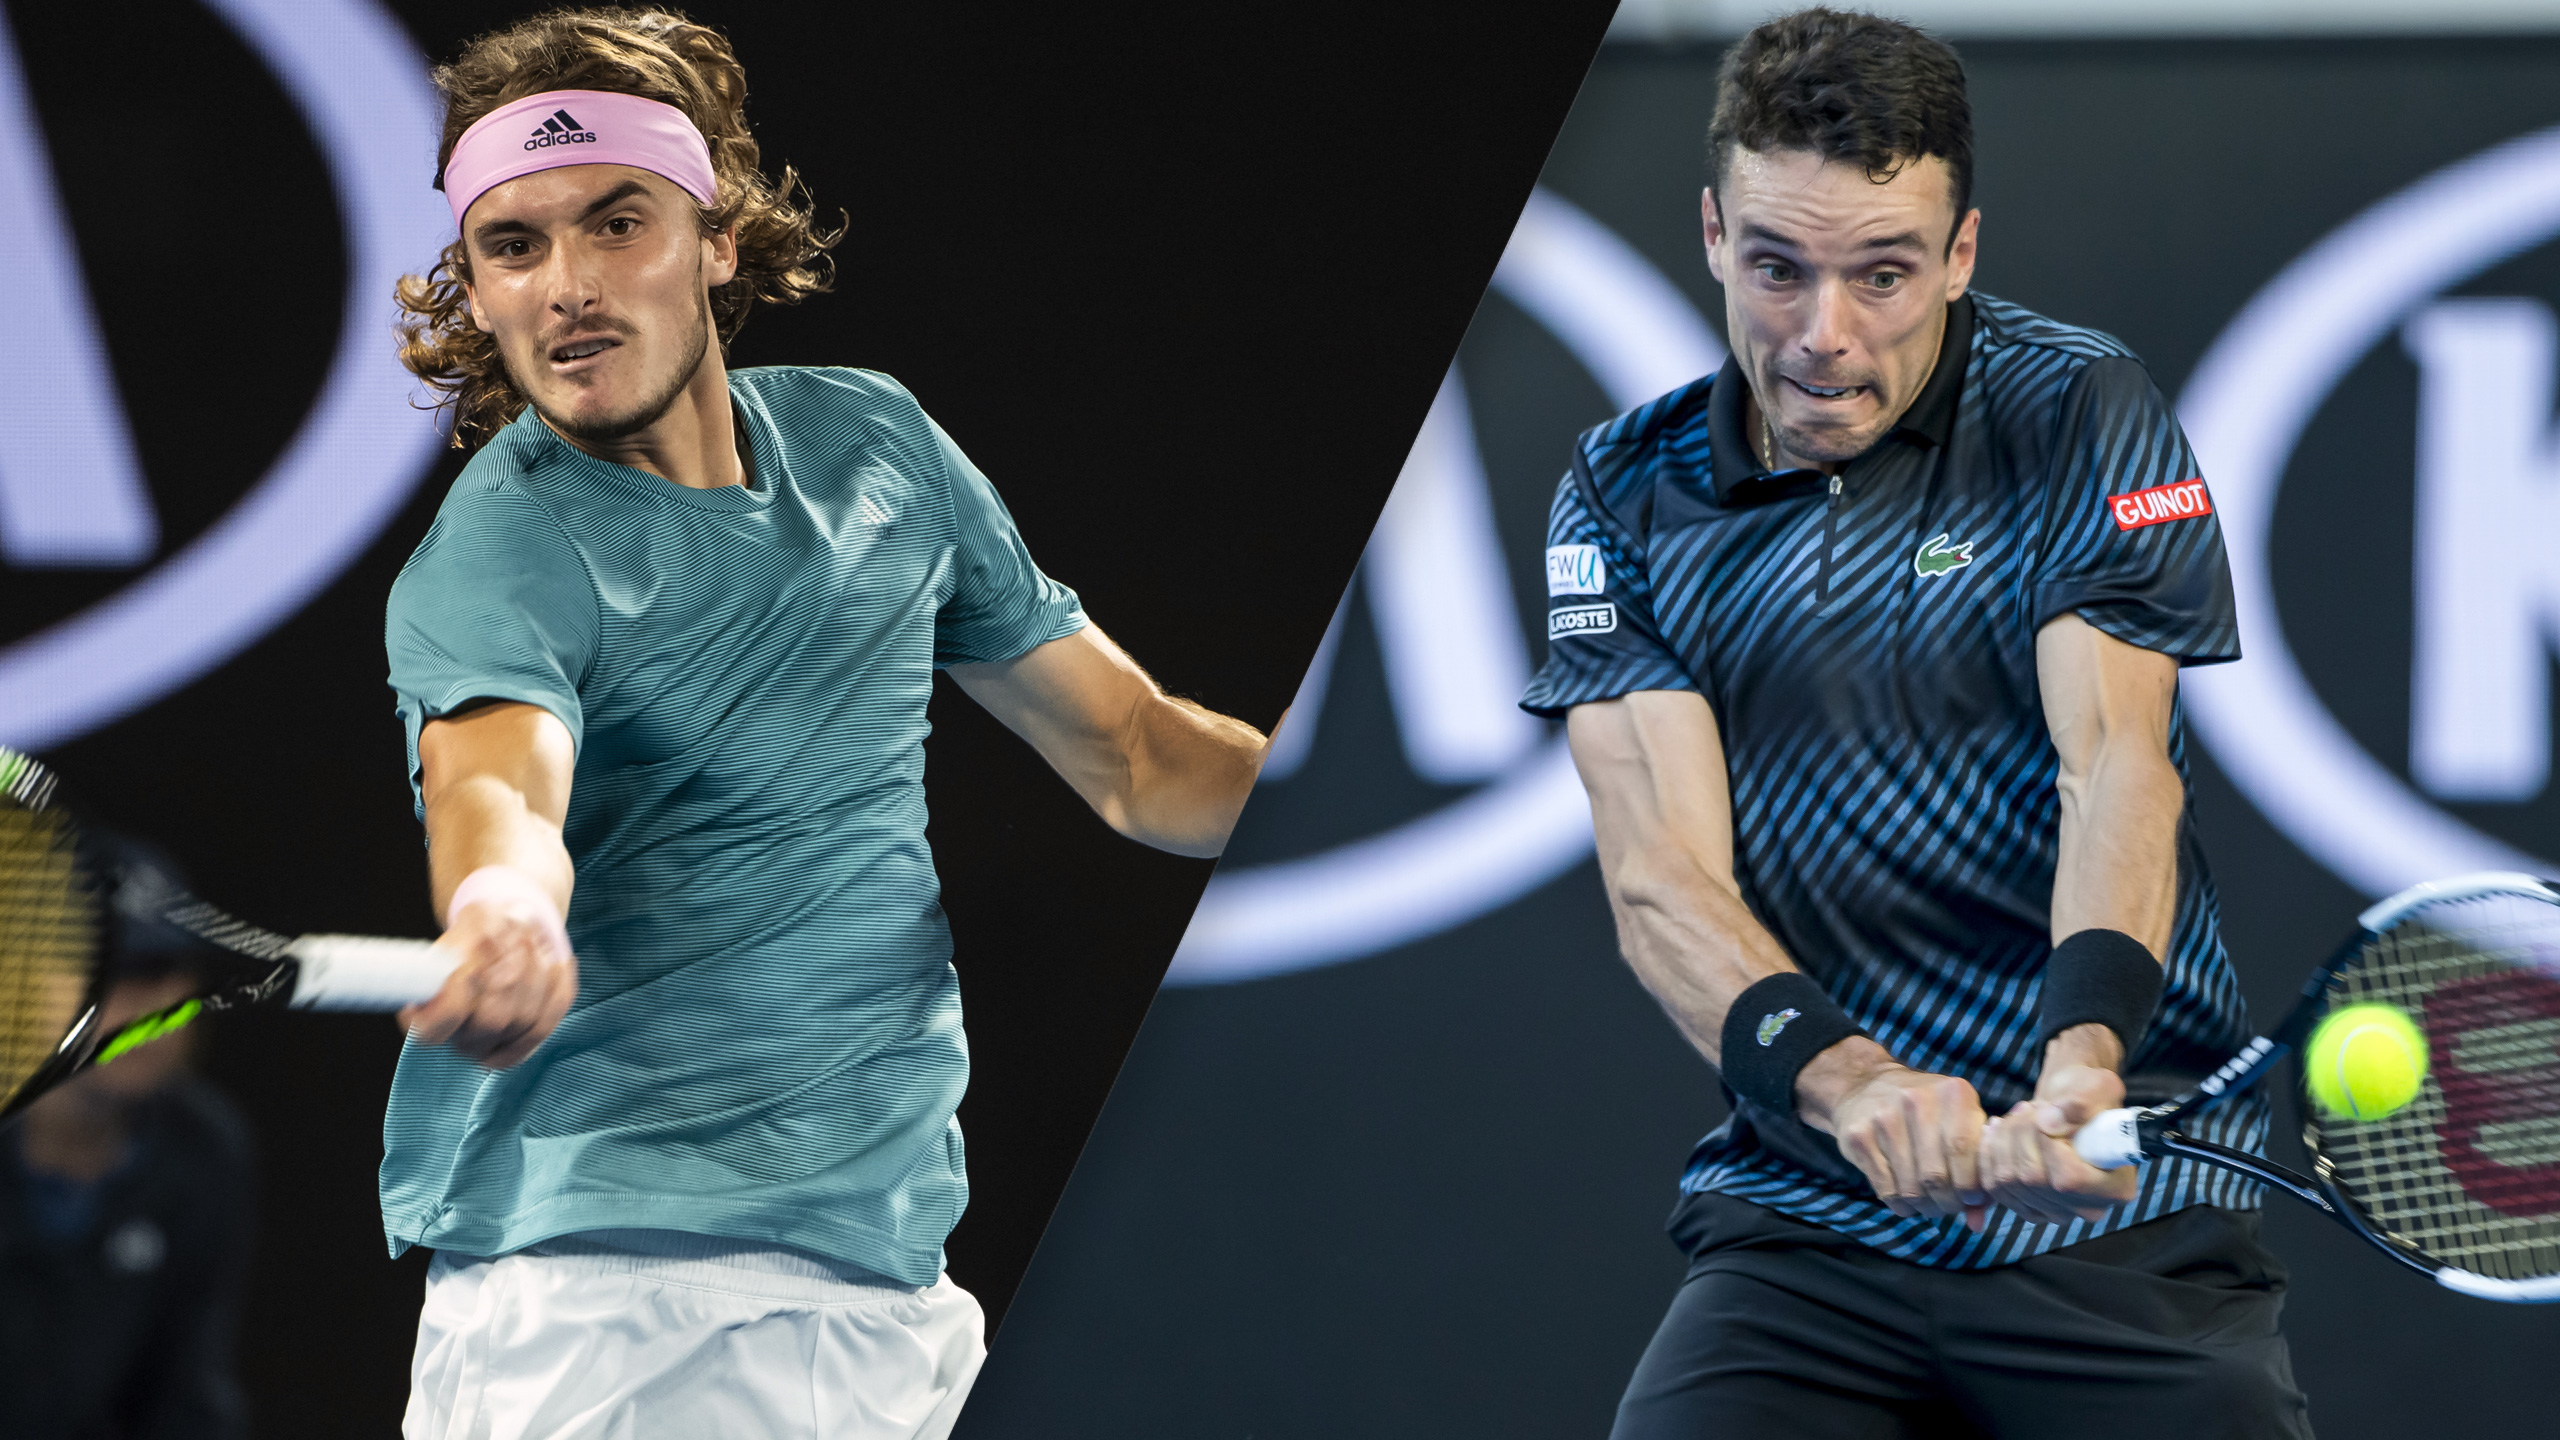 (14) Tsitsipas vs. (22) Bautista Agut (Men's Quarterfinals)